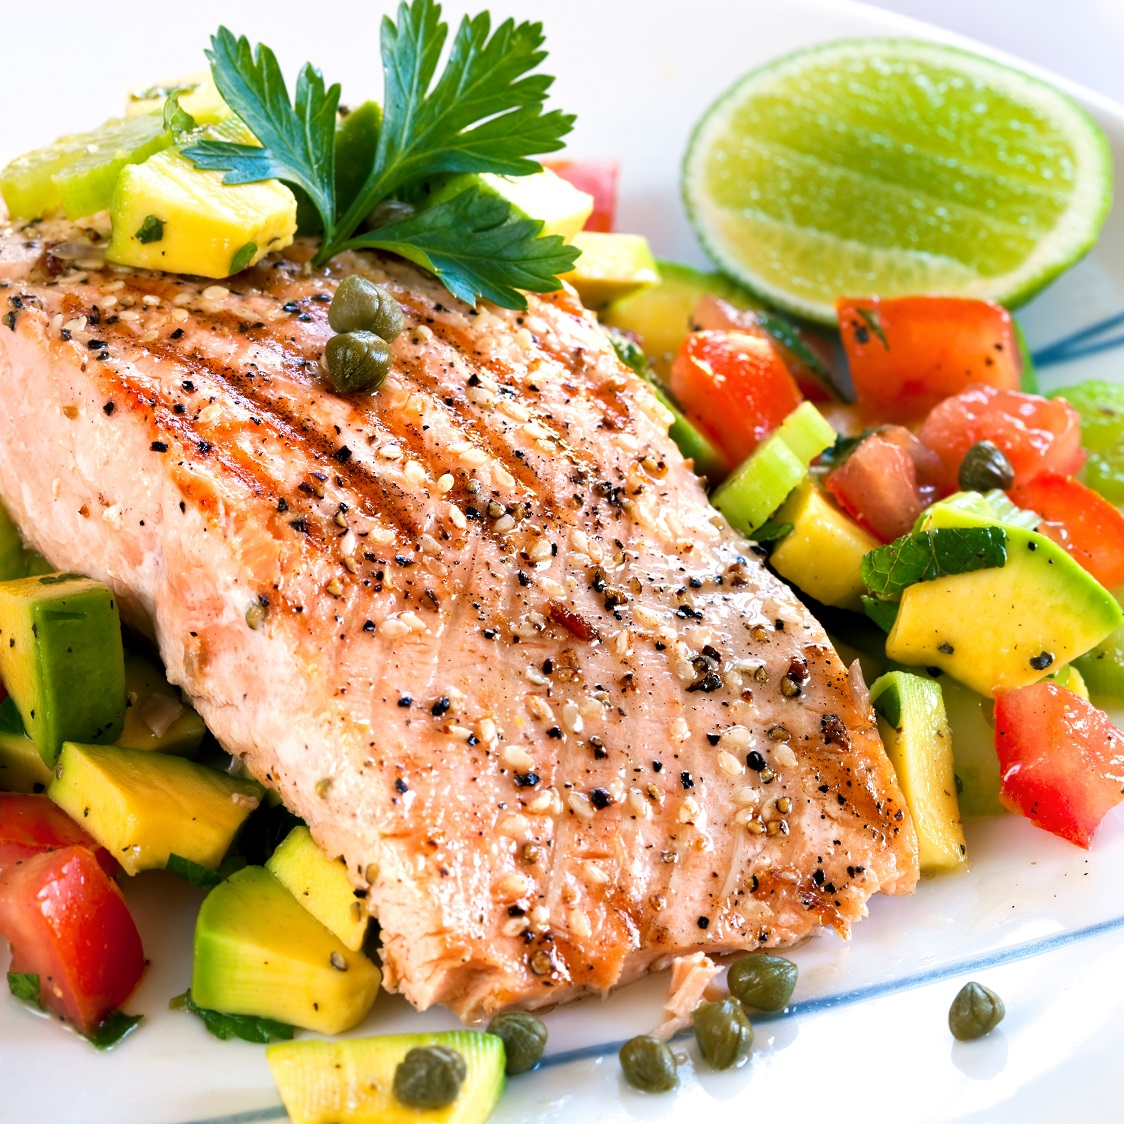 Ketogenic Diet For Beginners Guide: How Fat Can Promote Weight Loss and Fight Disease